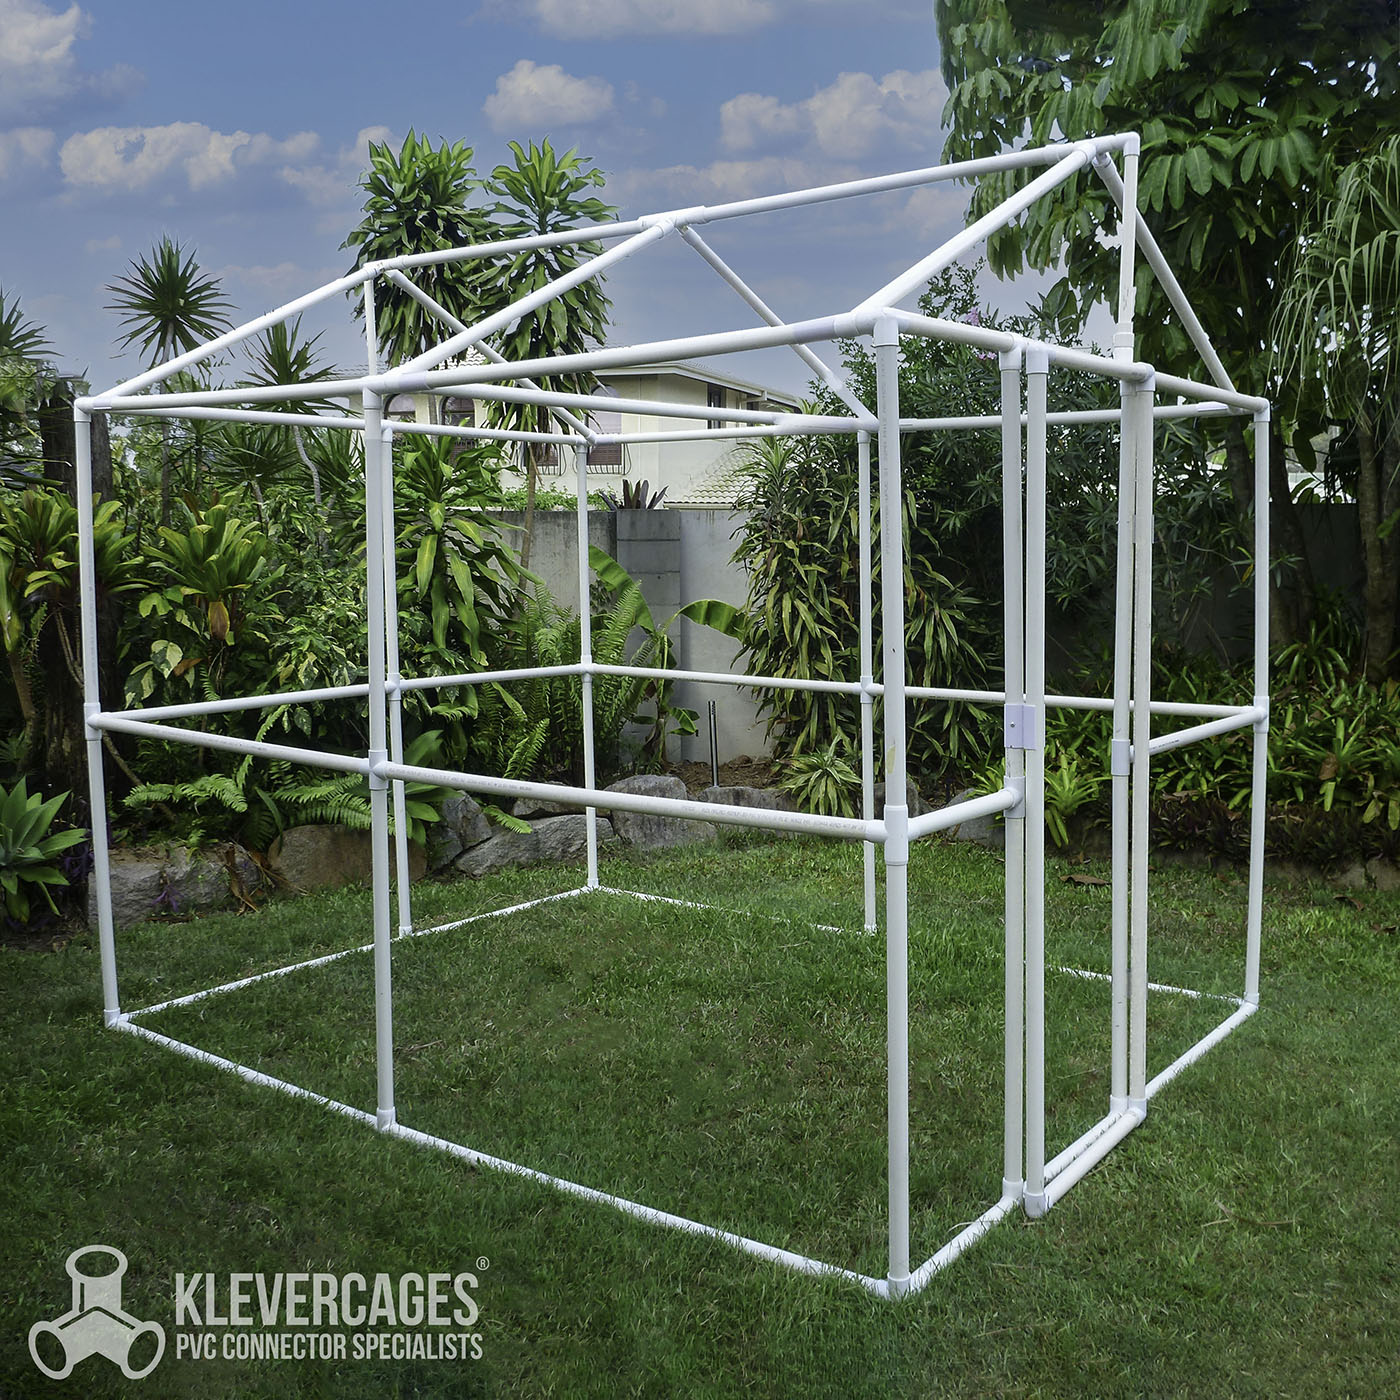 Full size greenhouse frame built with PVC pipe and connectors from Klever Cages